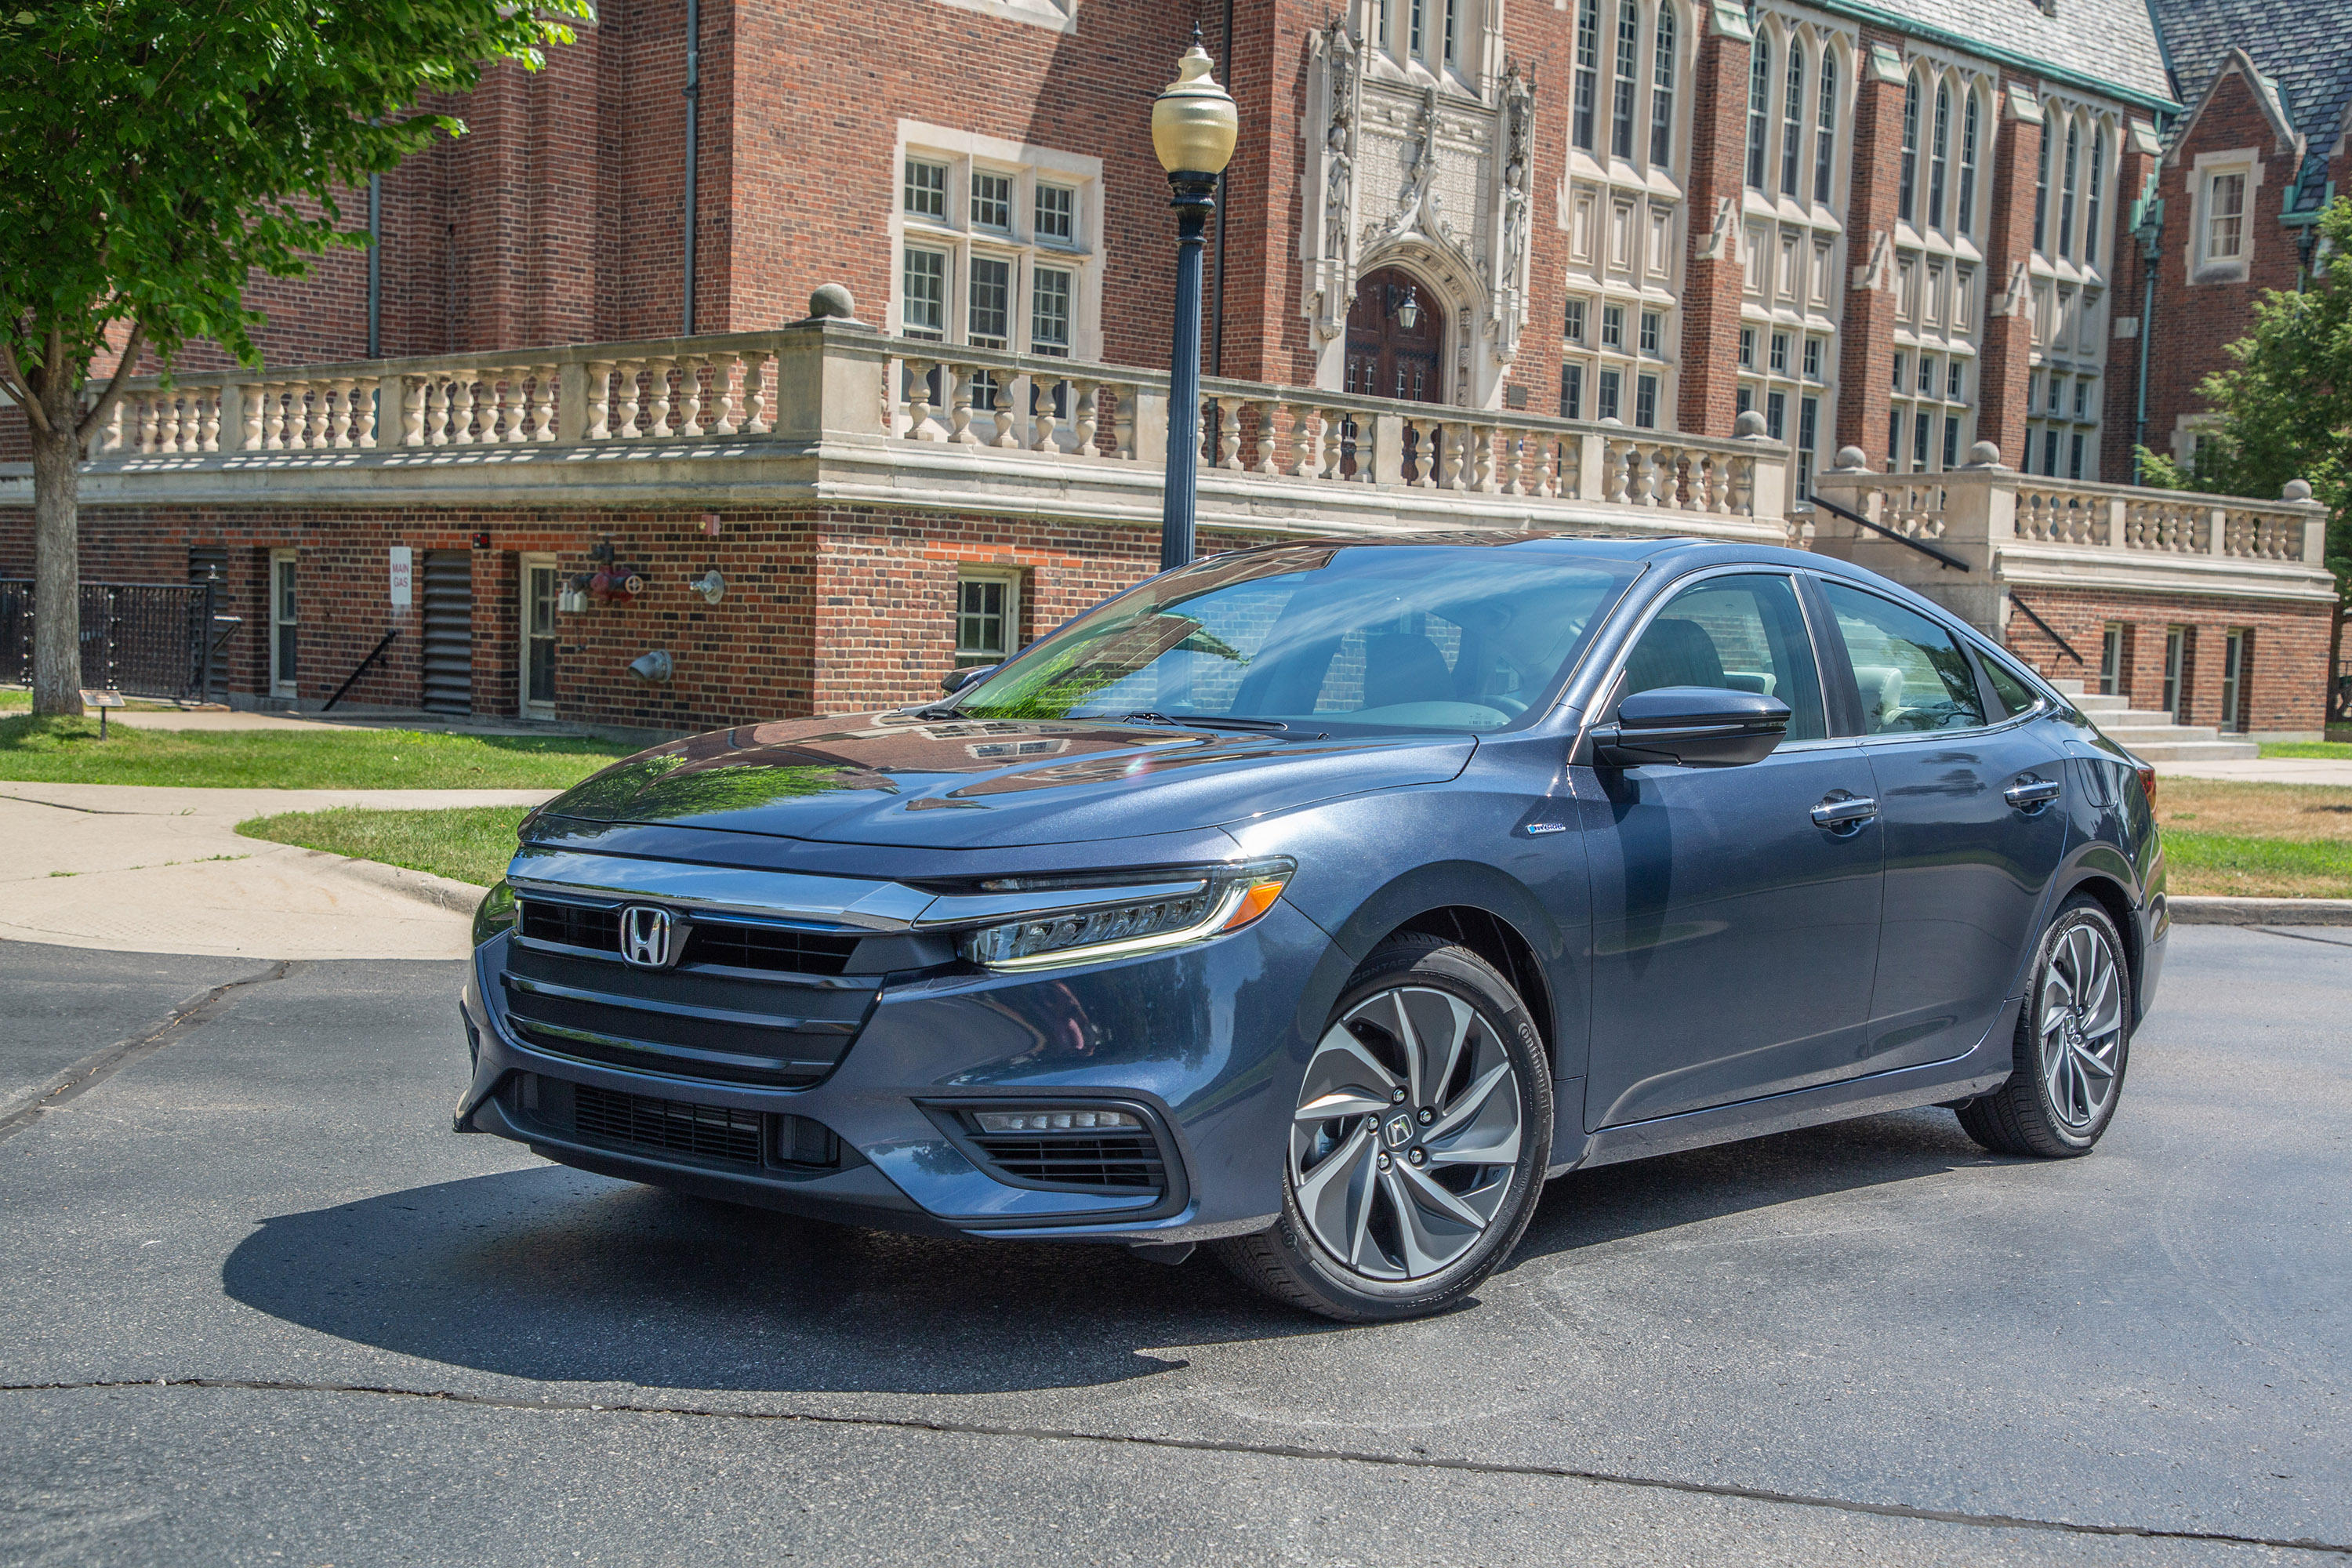 Andrew Krok's pick: Honda Insight